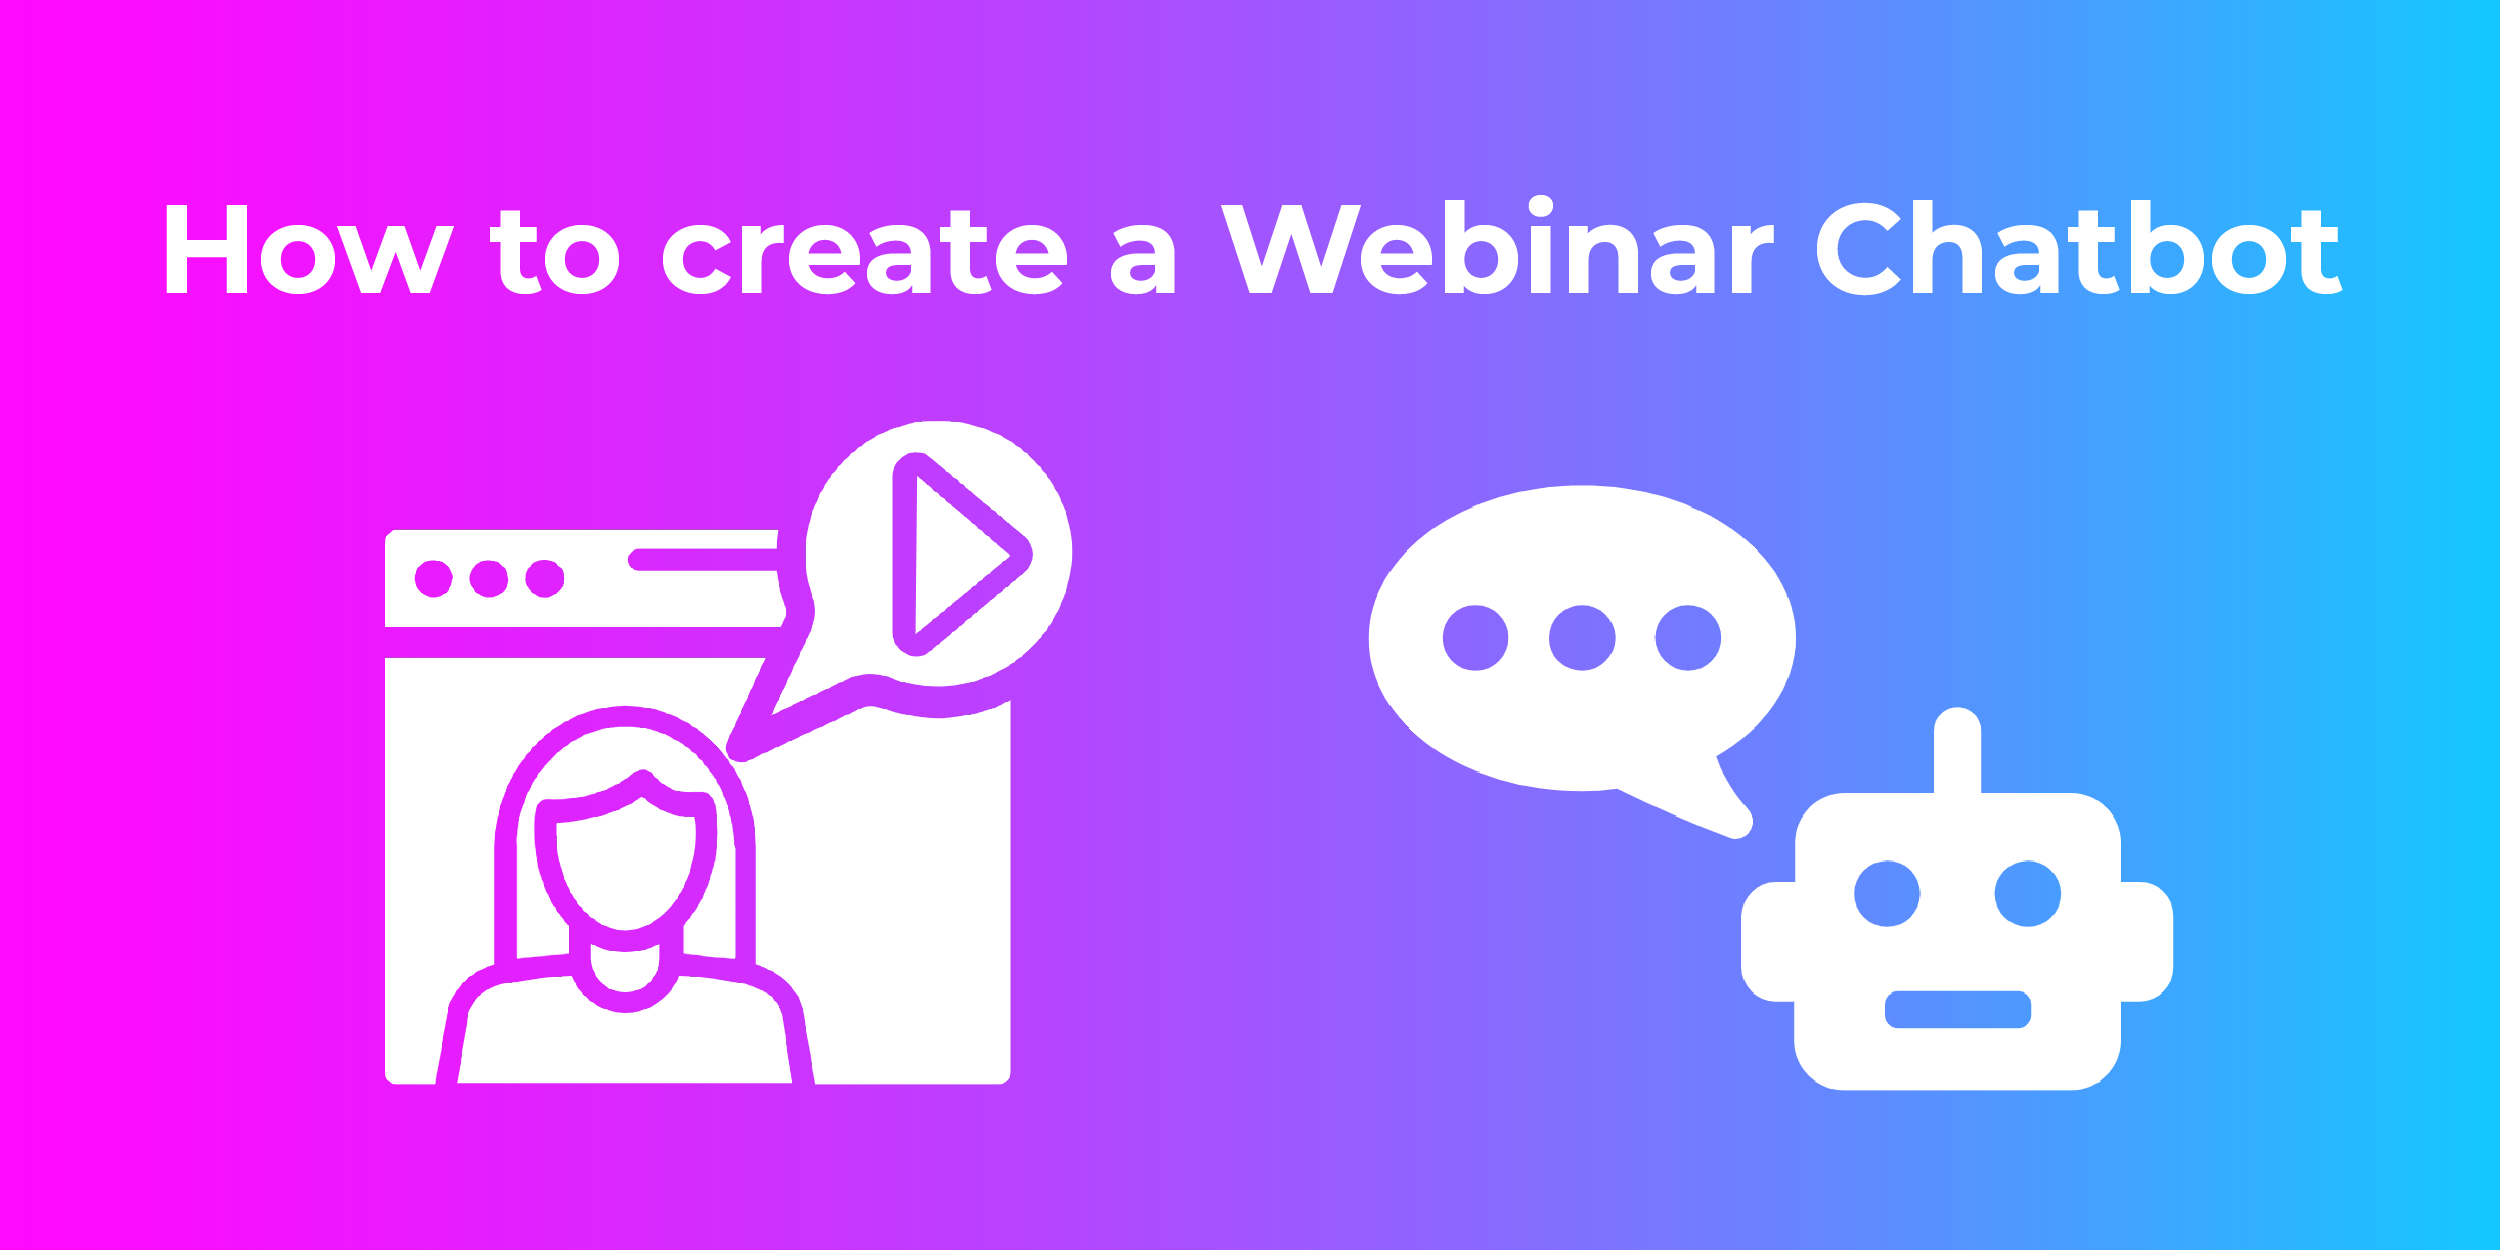 How to create a Webinar Chatbot